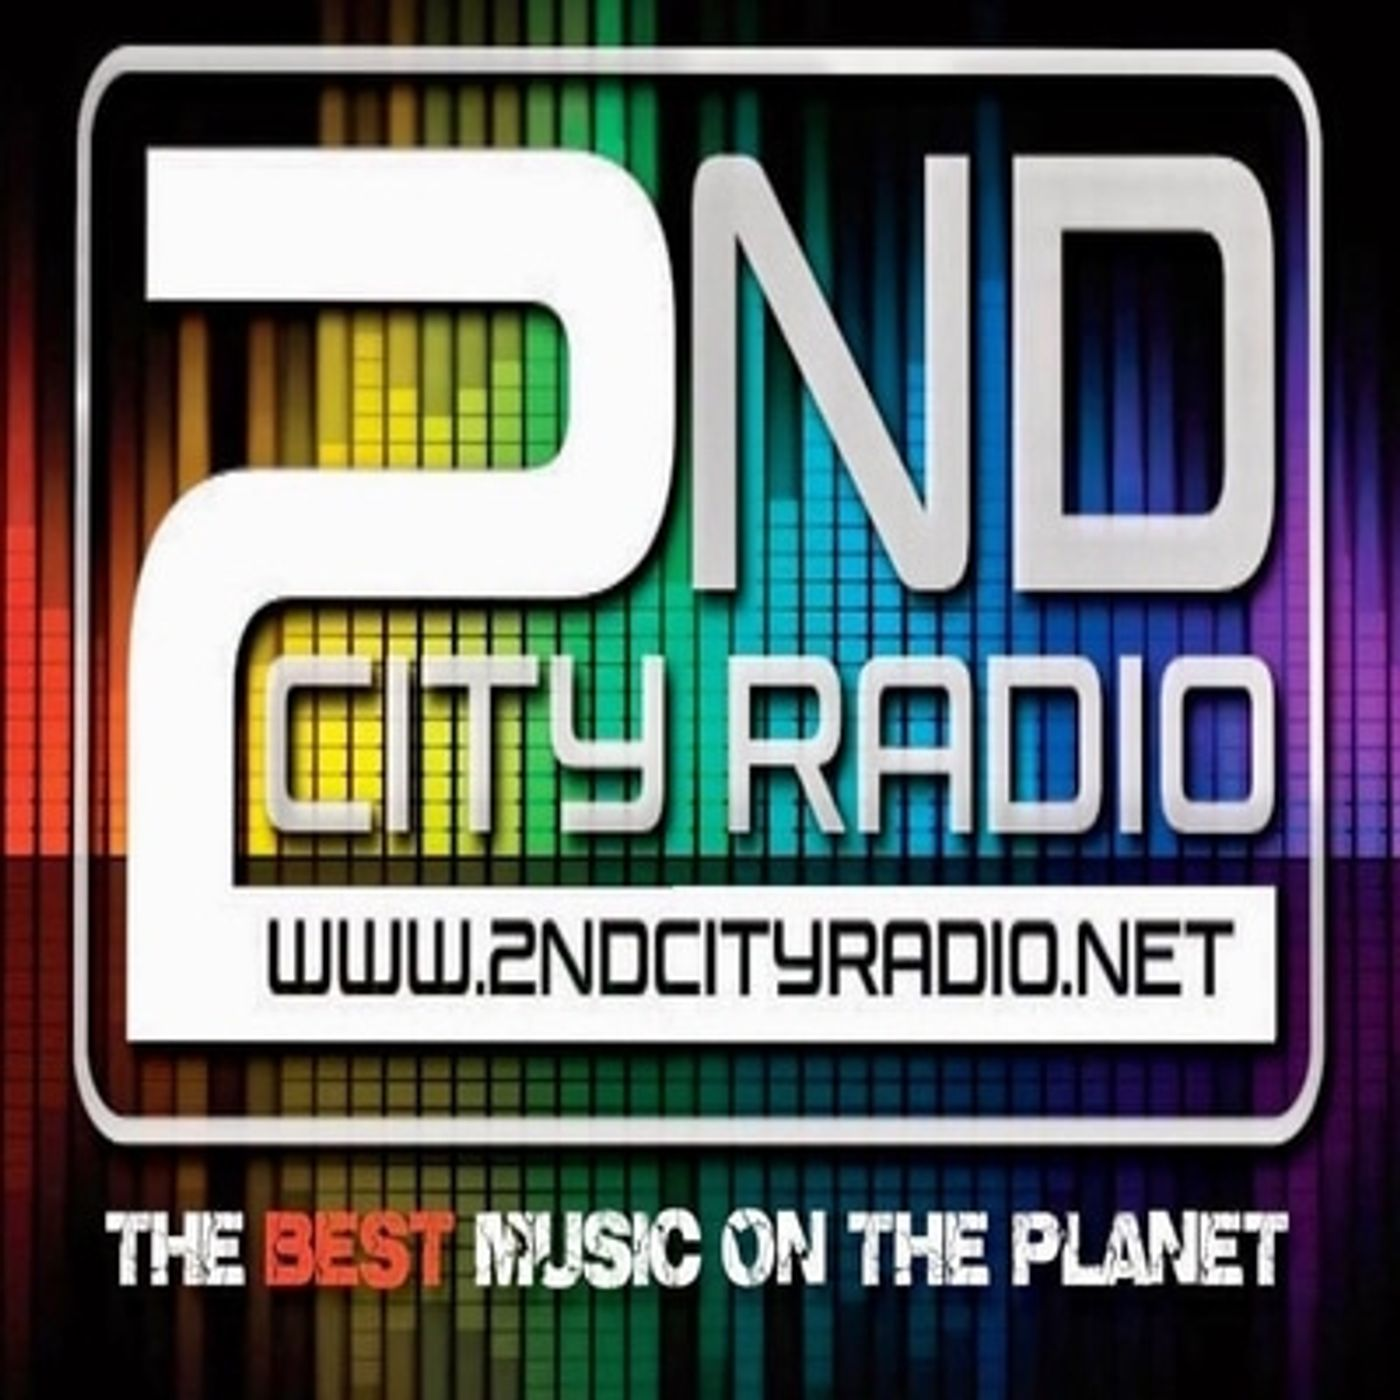 Tuesday the 11th of May on 2ndcityradio.net